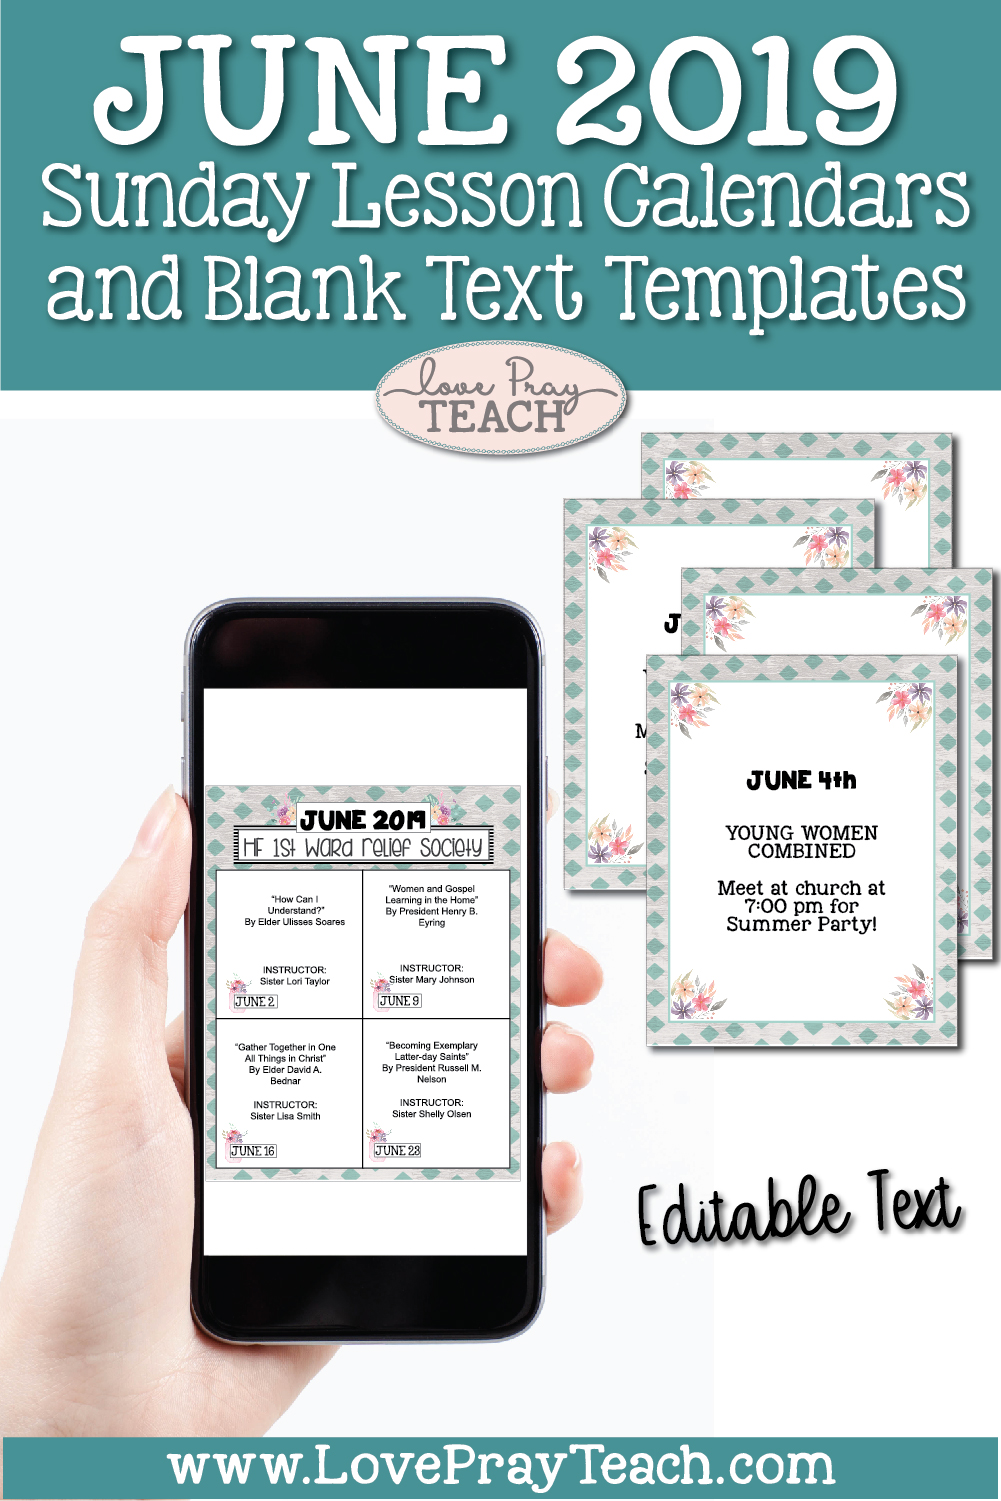 June 2019 Editable Newsletter Template and Sunday Lesson Calendars for Relief Society and Young Women